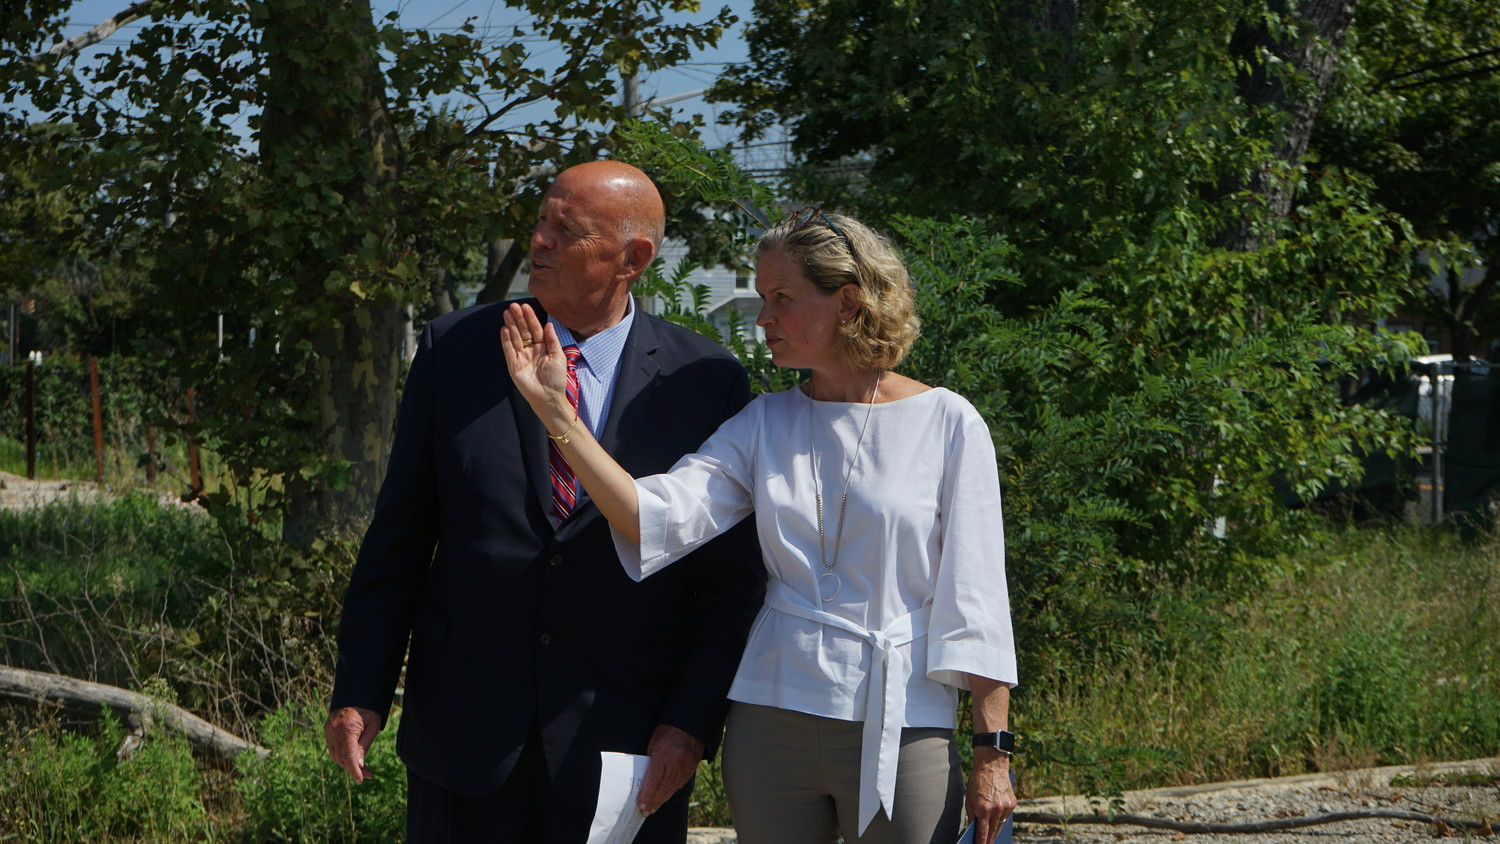 County Executive Laura Curran and Nassau County Industrial Development Agency Chairman Richard Kessel at the site of the proposed apartment development in Oceanside. The two lauded the project as potentially bringing a younger generation of renters to the area, though some residents are concerned about traffic.